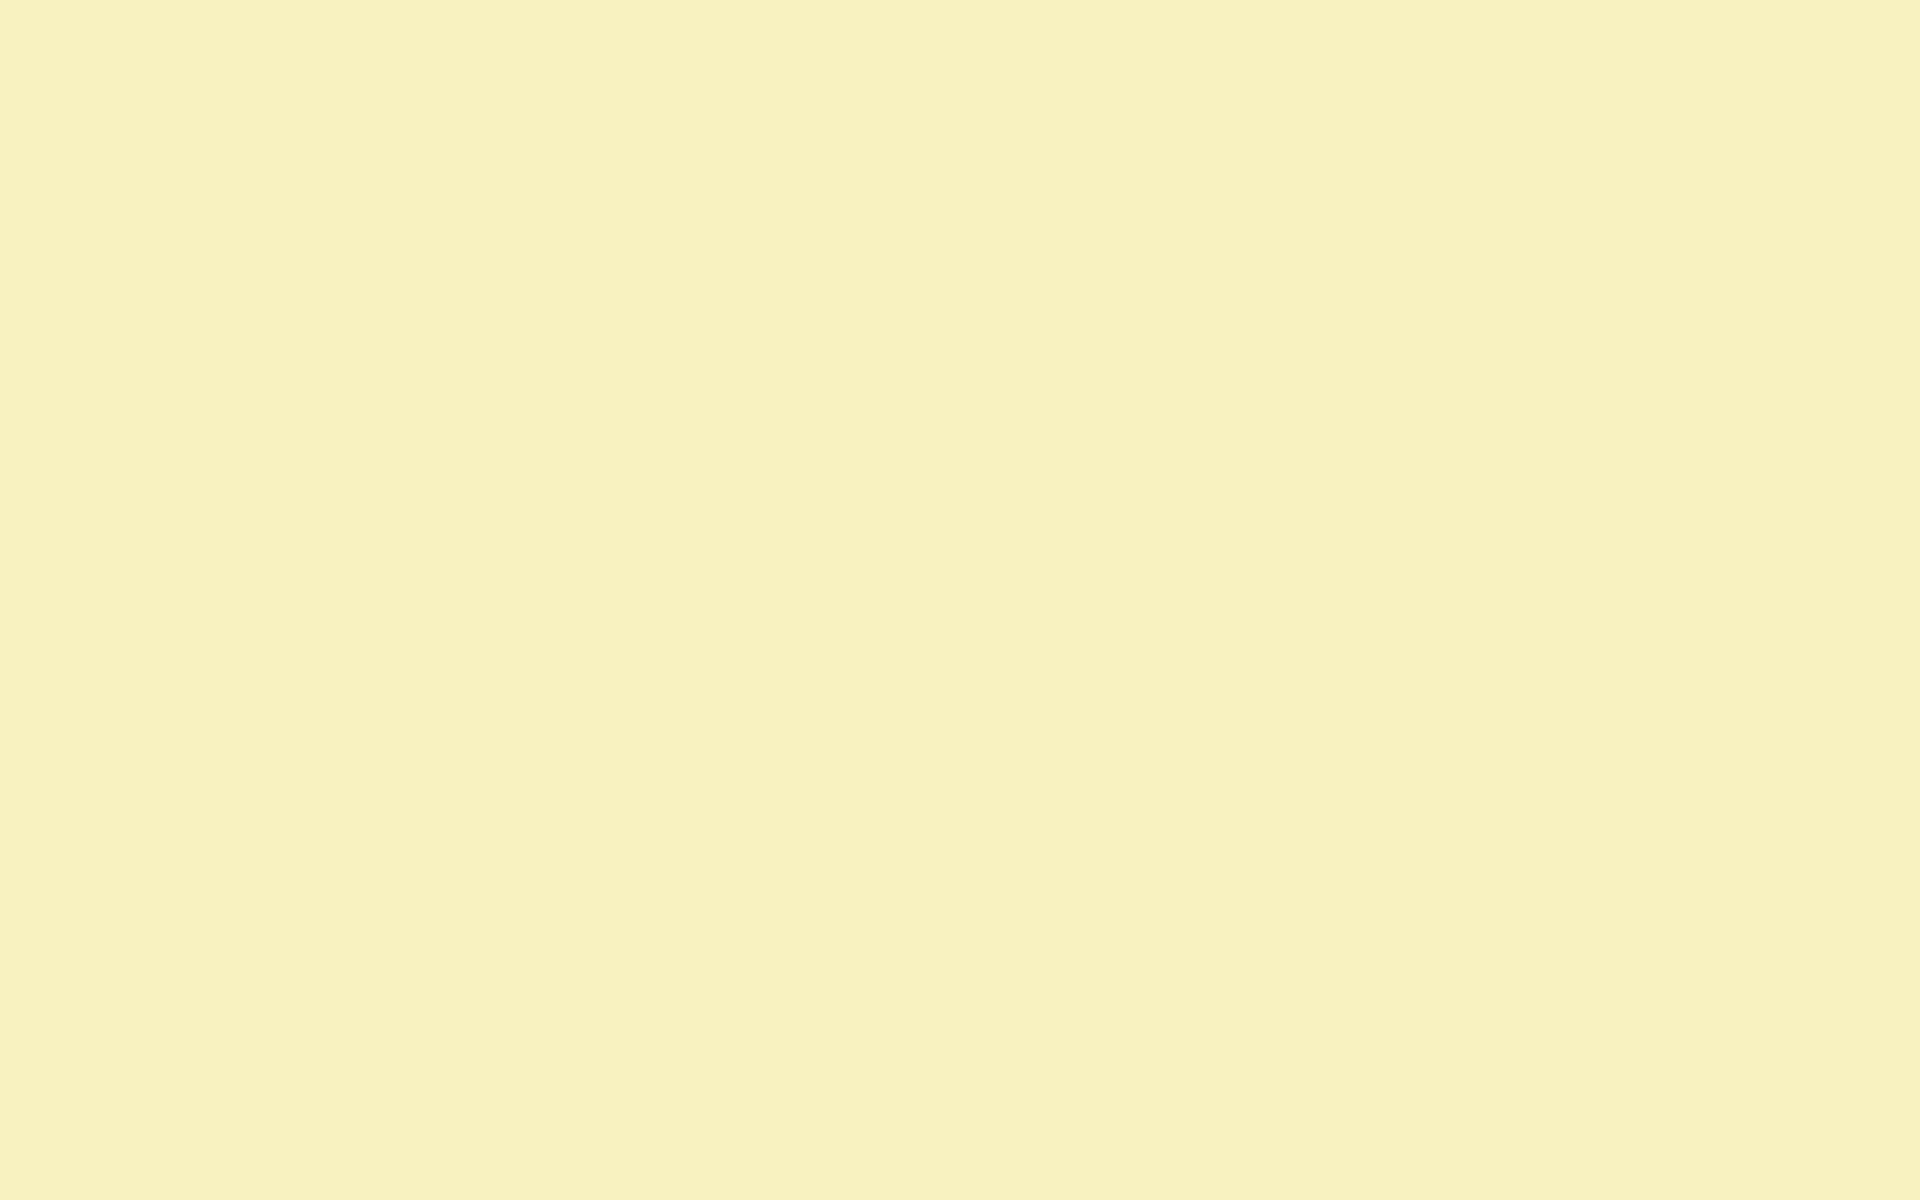 1920x1200 Blond Solid Color Background